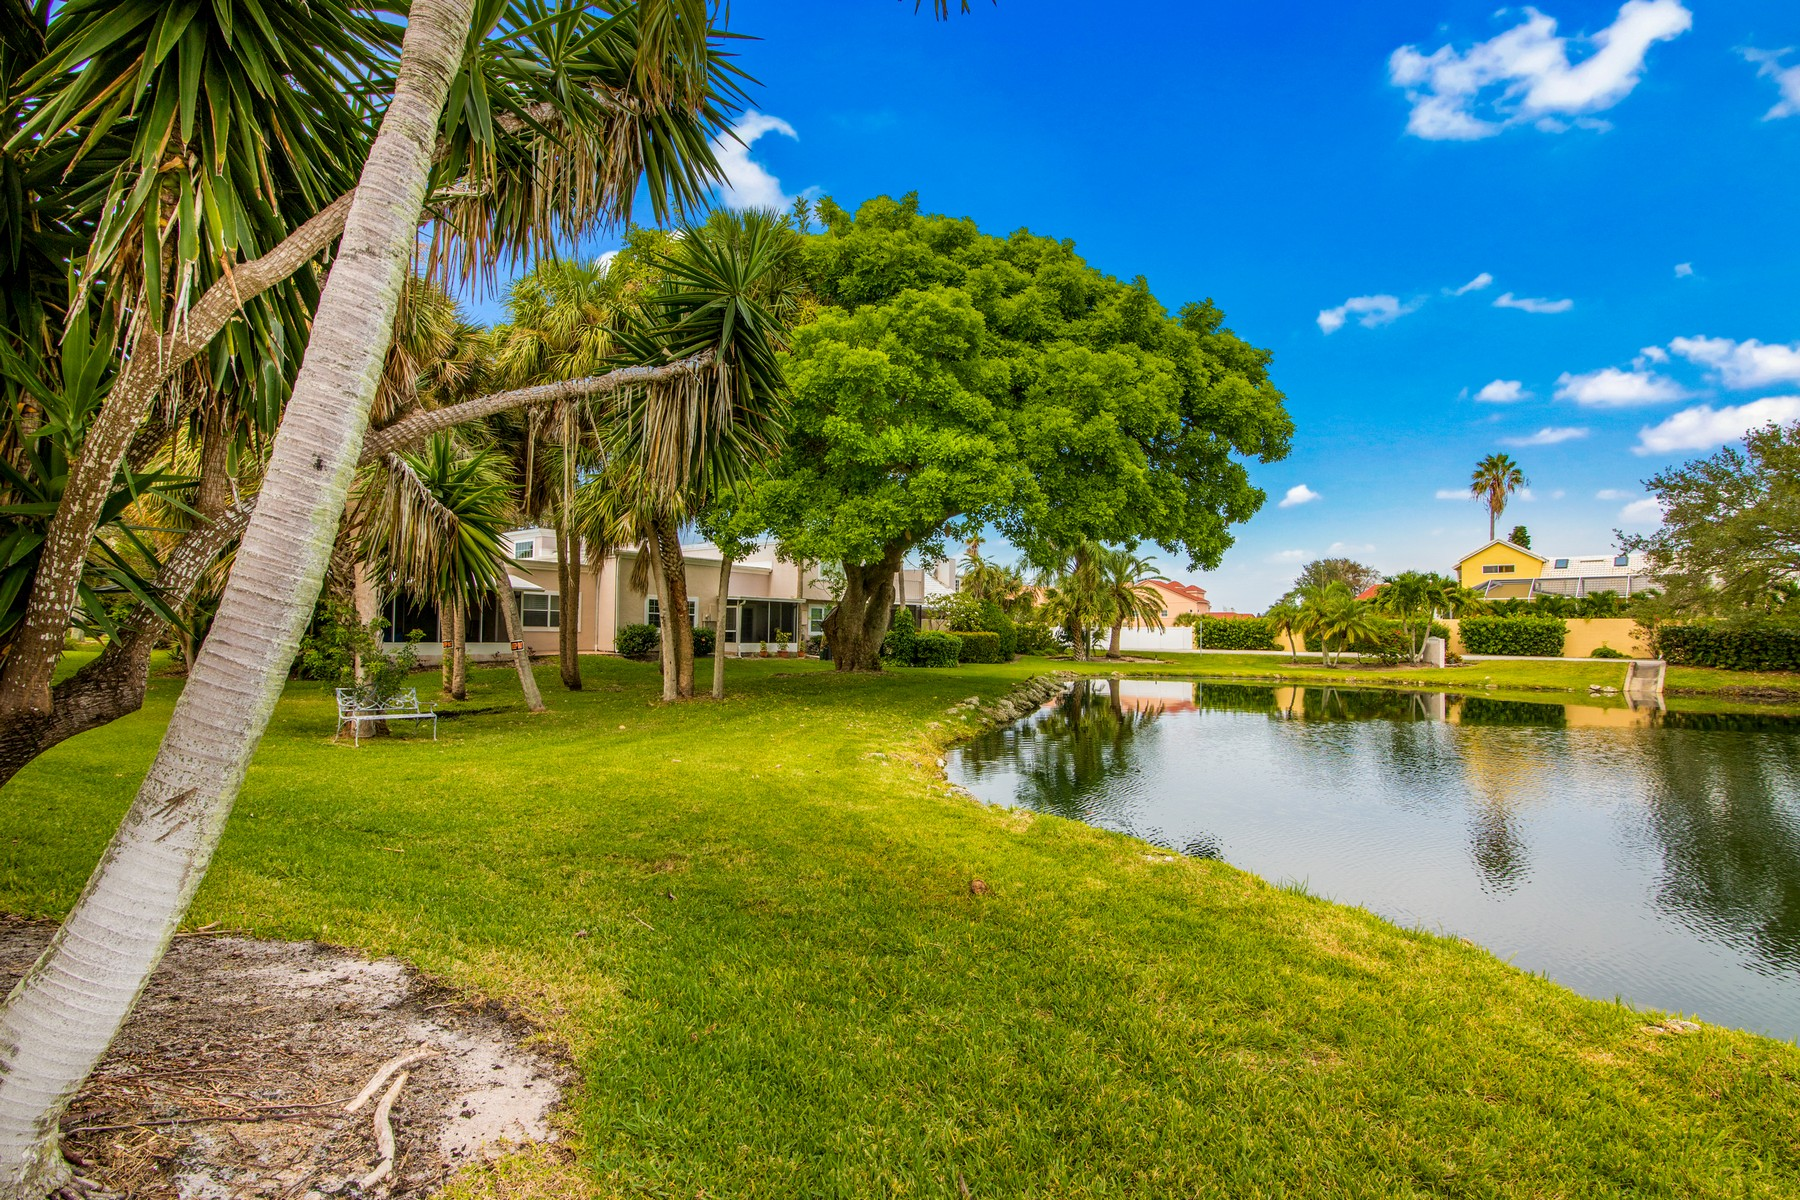 Additional photo for property listing at Immaculate End Unit Town Home in Superior Melbourne Beach Location 409 La Costa Street Melbourne Beach, Florida 32951 United States